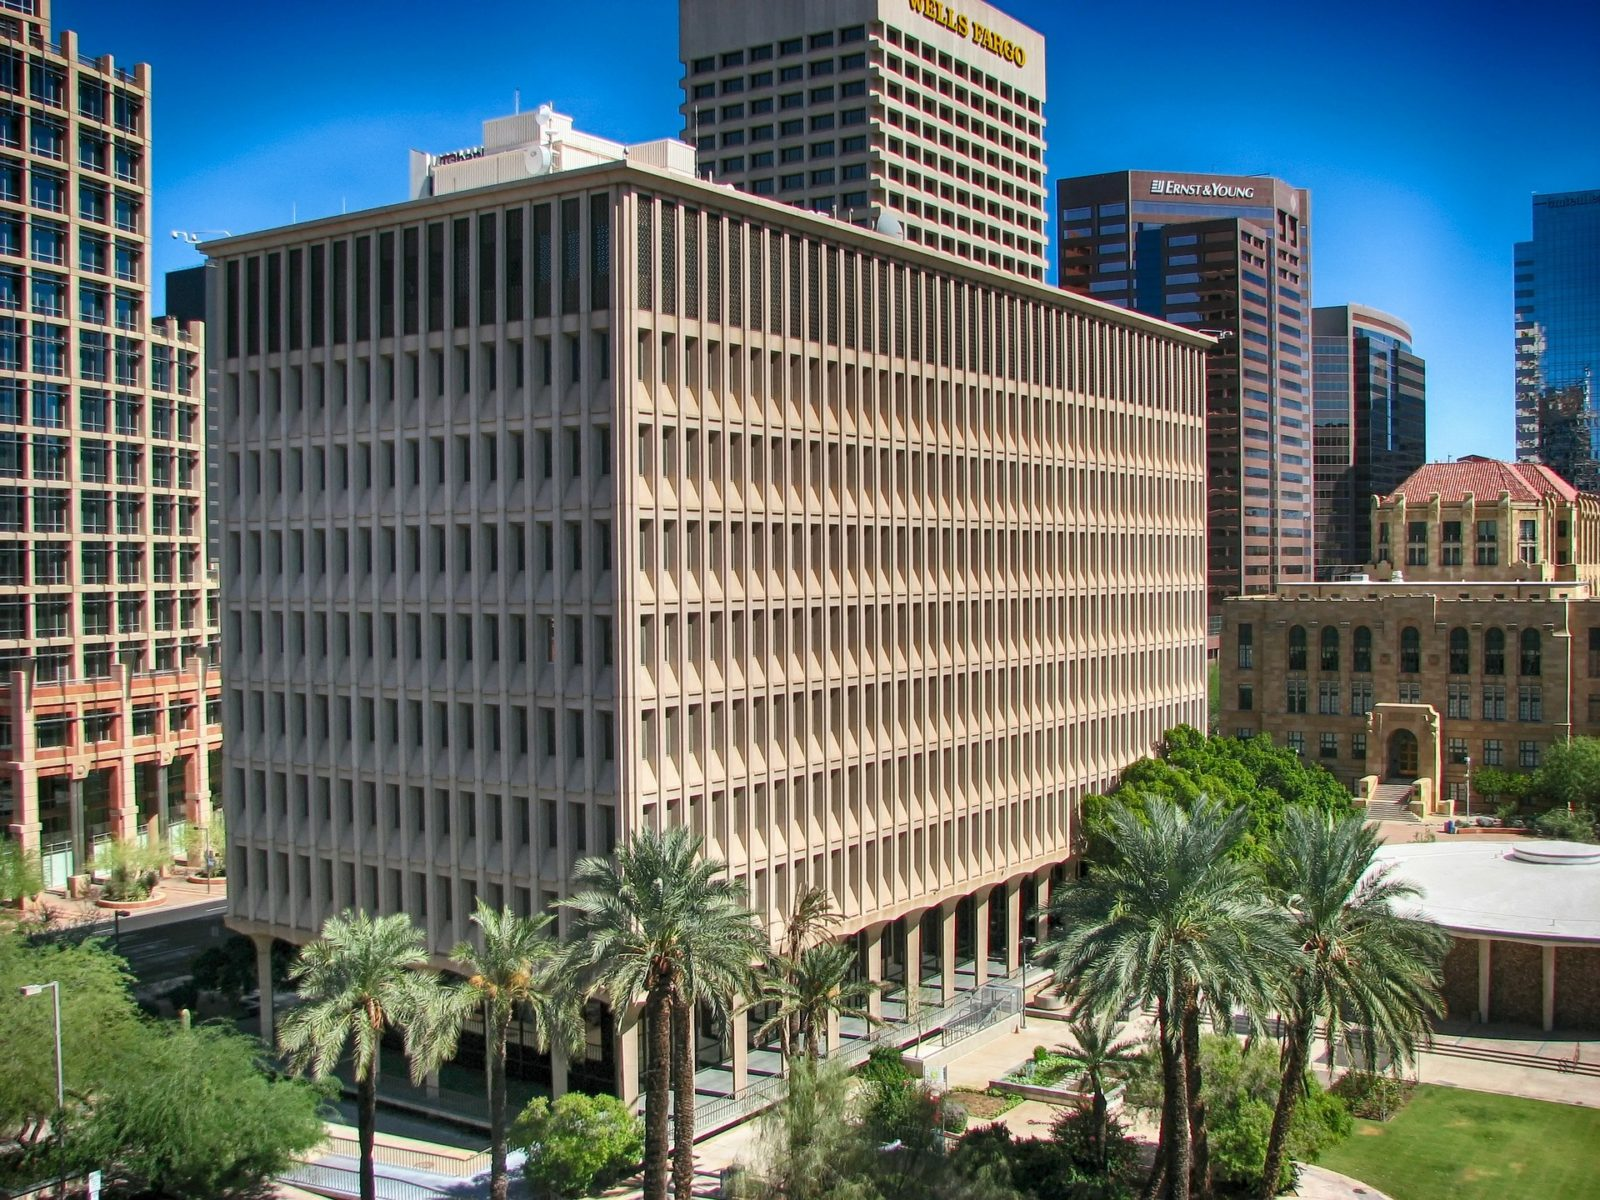 Top Attractions And Things To Do In Phoenix, Arizona